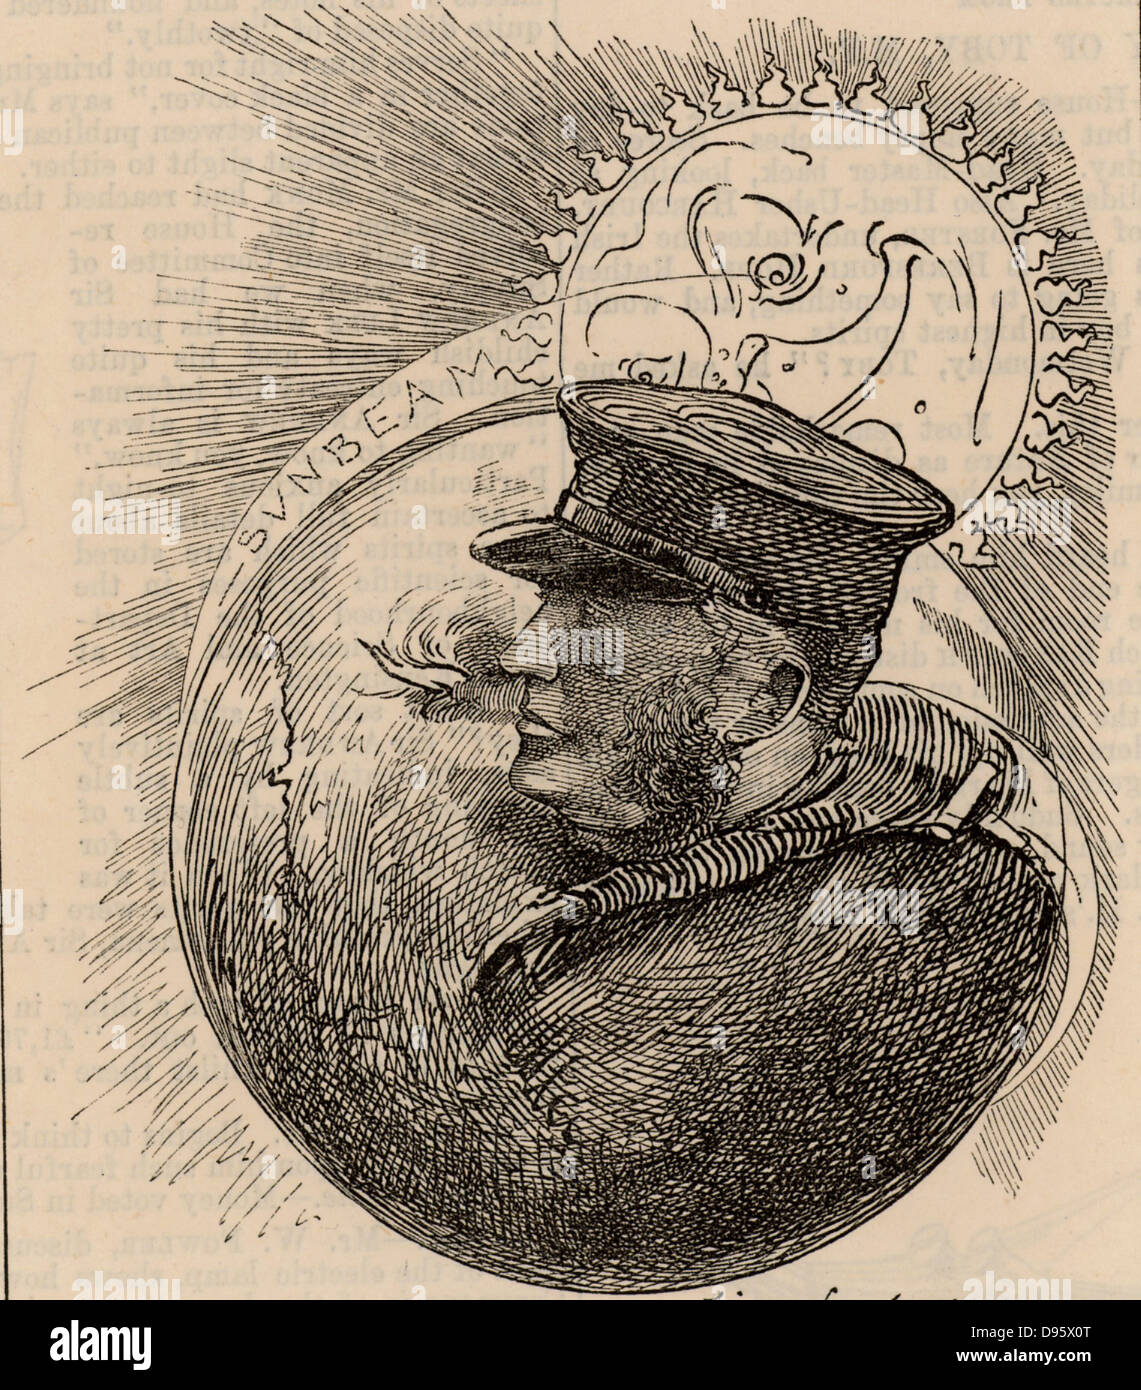 Thomas Brassey, lst Earl Brassey (1836-1918) English Liberal politician and eldest son of Thomas Brassey the eminent - Stock Image